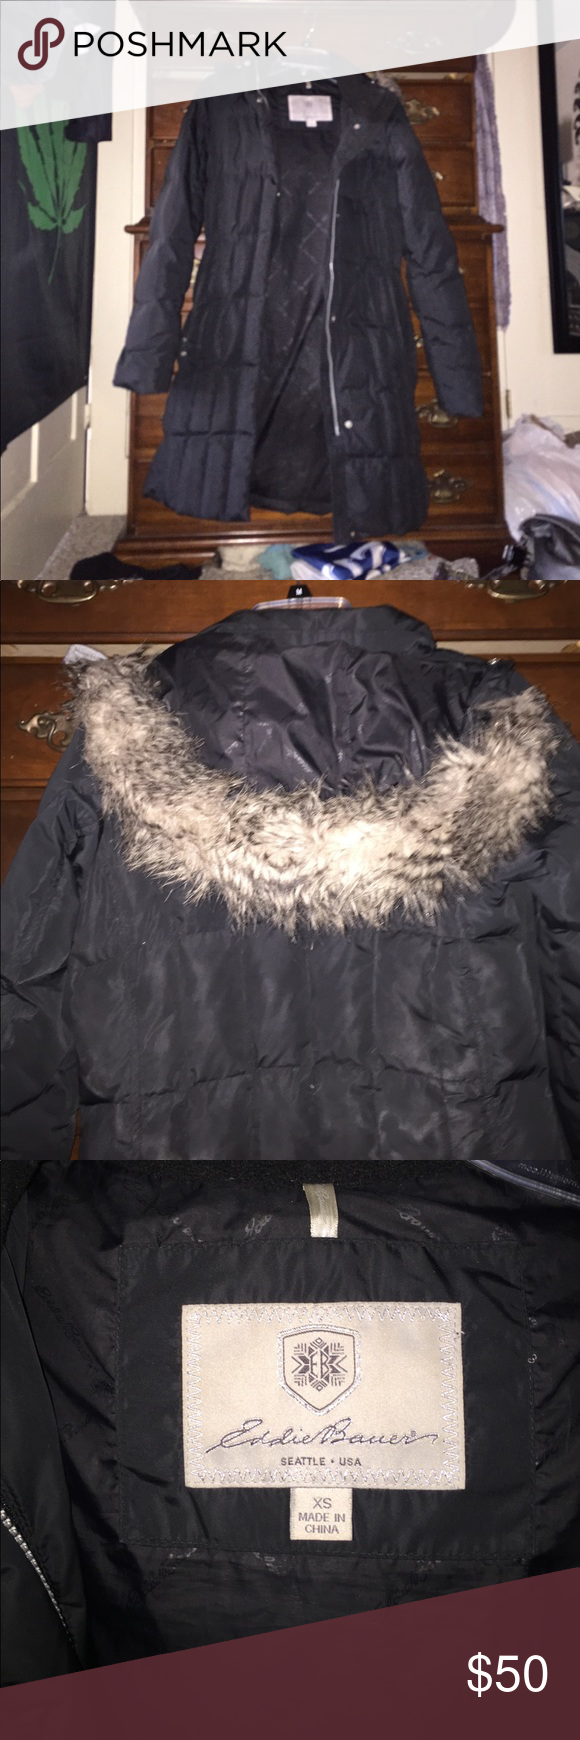 "Eddie Bauer Goose Down Jacket Knee length, goose down Eddie Bauer Winter coat. Has detachable fur hood. Says size XS but fits more like a small. For reference, I'm 5'6"", 145 lbs and it fits me just a little snug. Great condition and super super warm. Eddie Bauer Jackets & Coats Puffers"